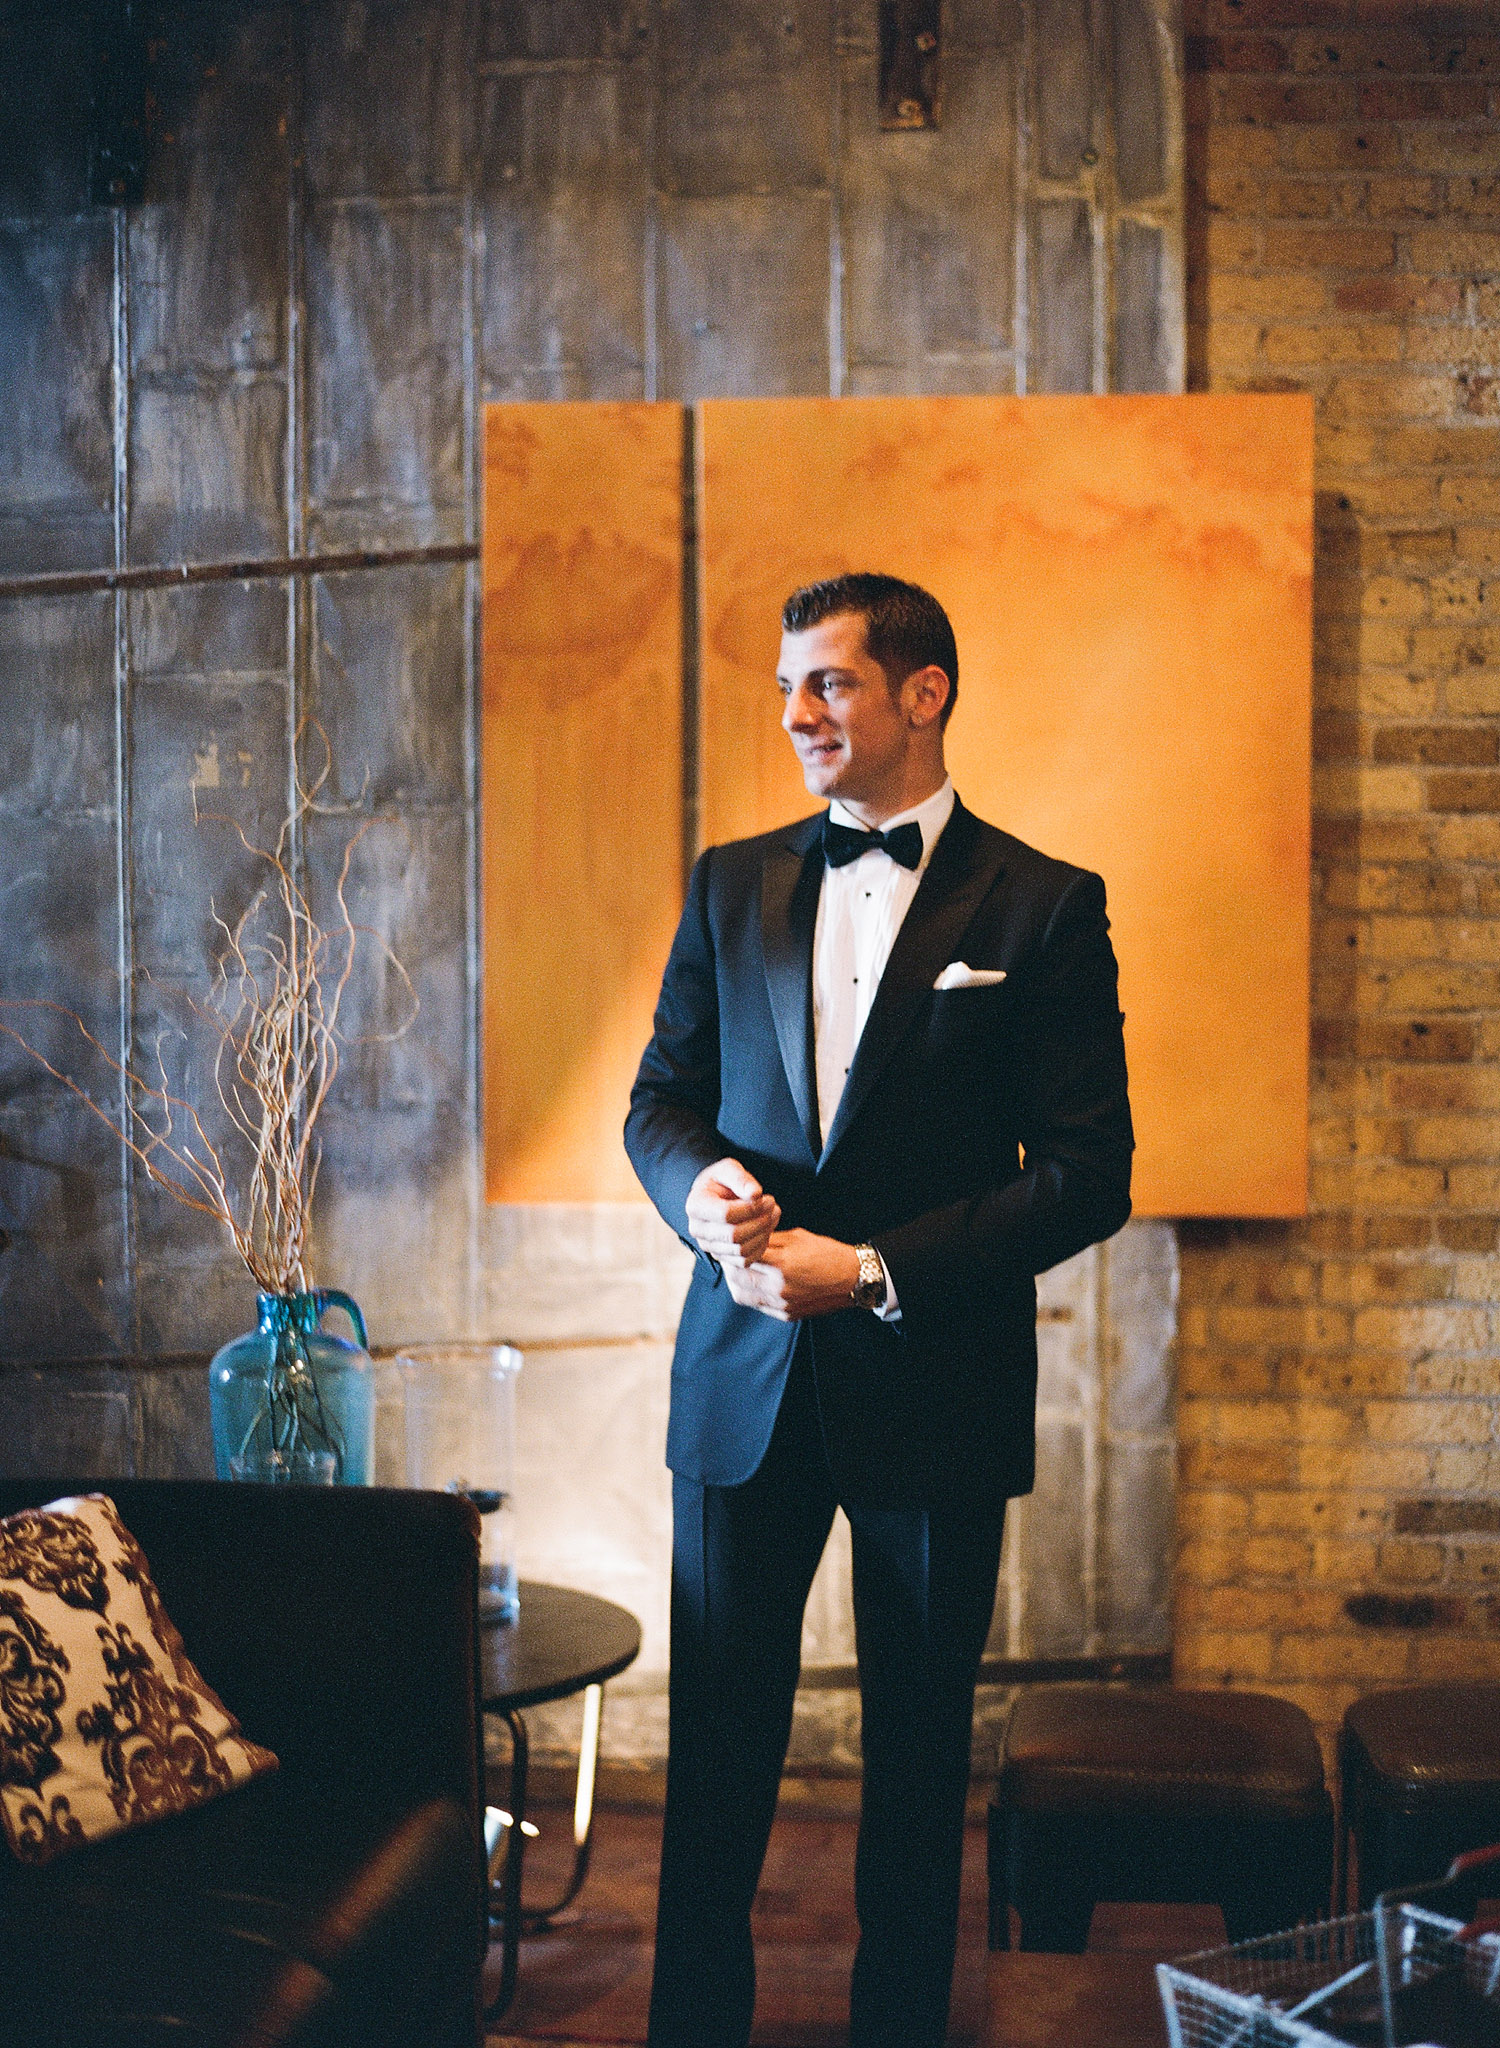 the groom gets ready at this Italian Villa wedding at the Villa Terrace wedding photographed by Destination wedding photographer Lexia Frank who is a film photographer for weddings internationally